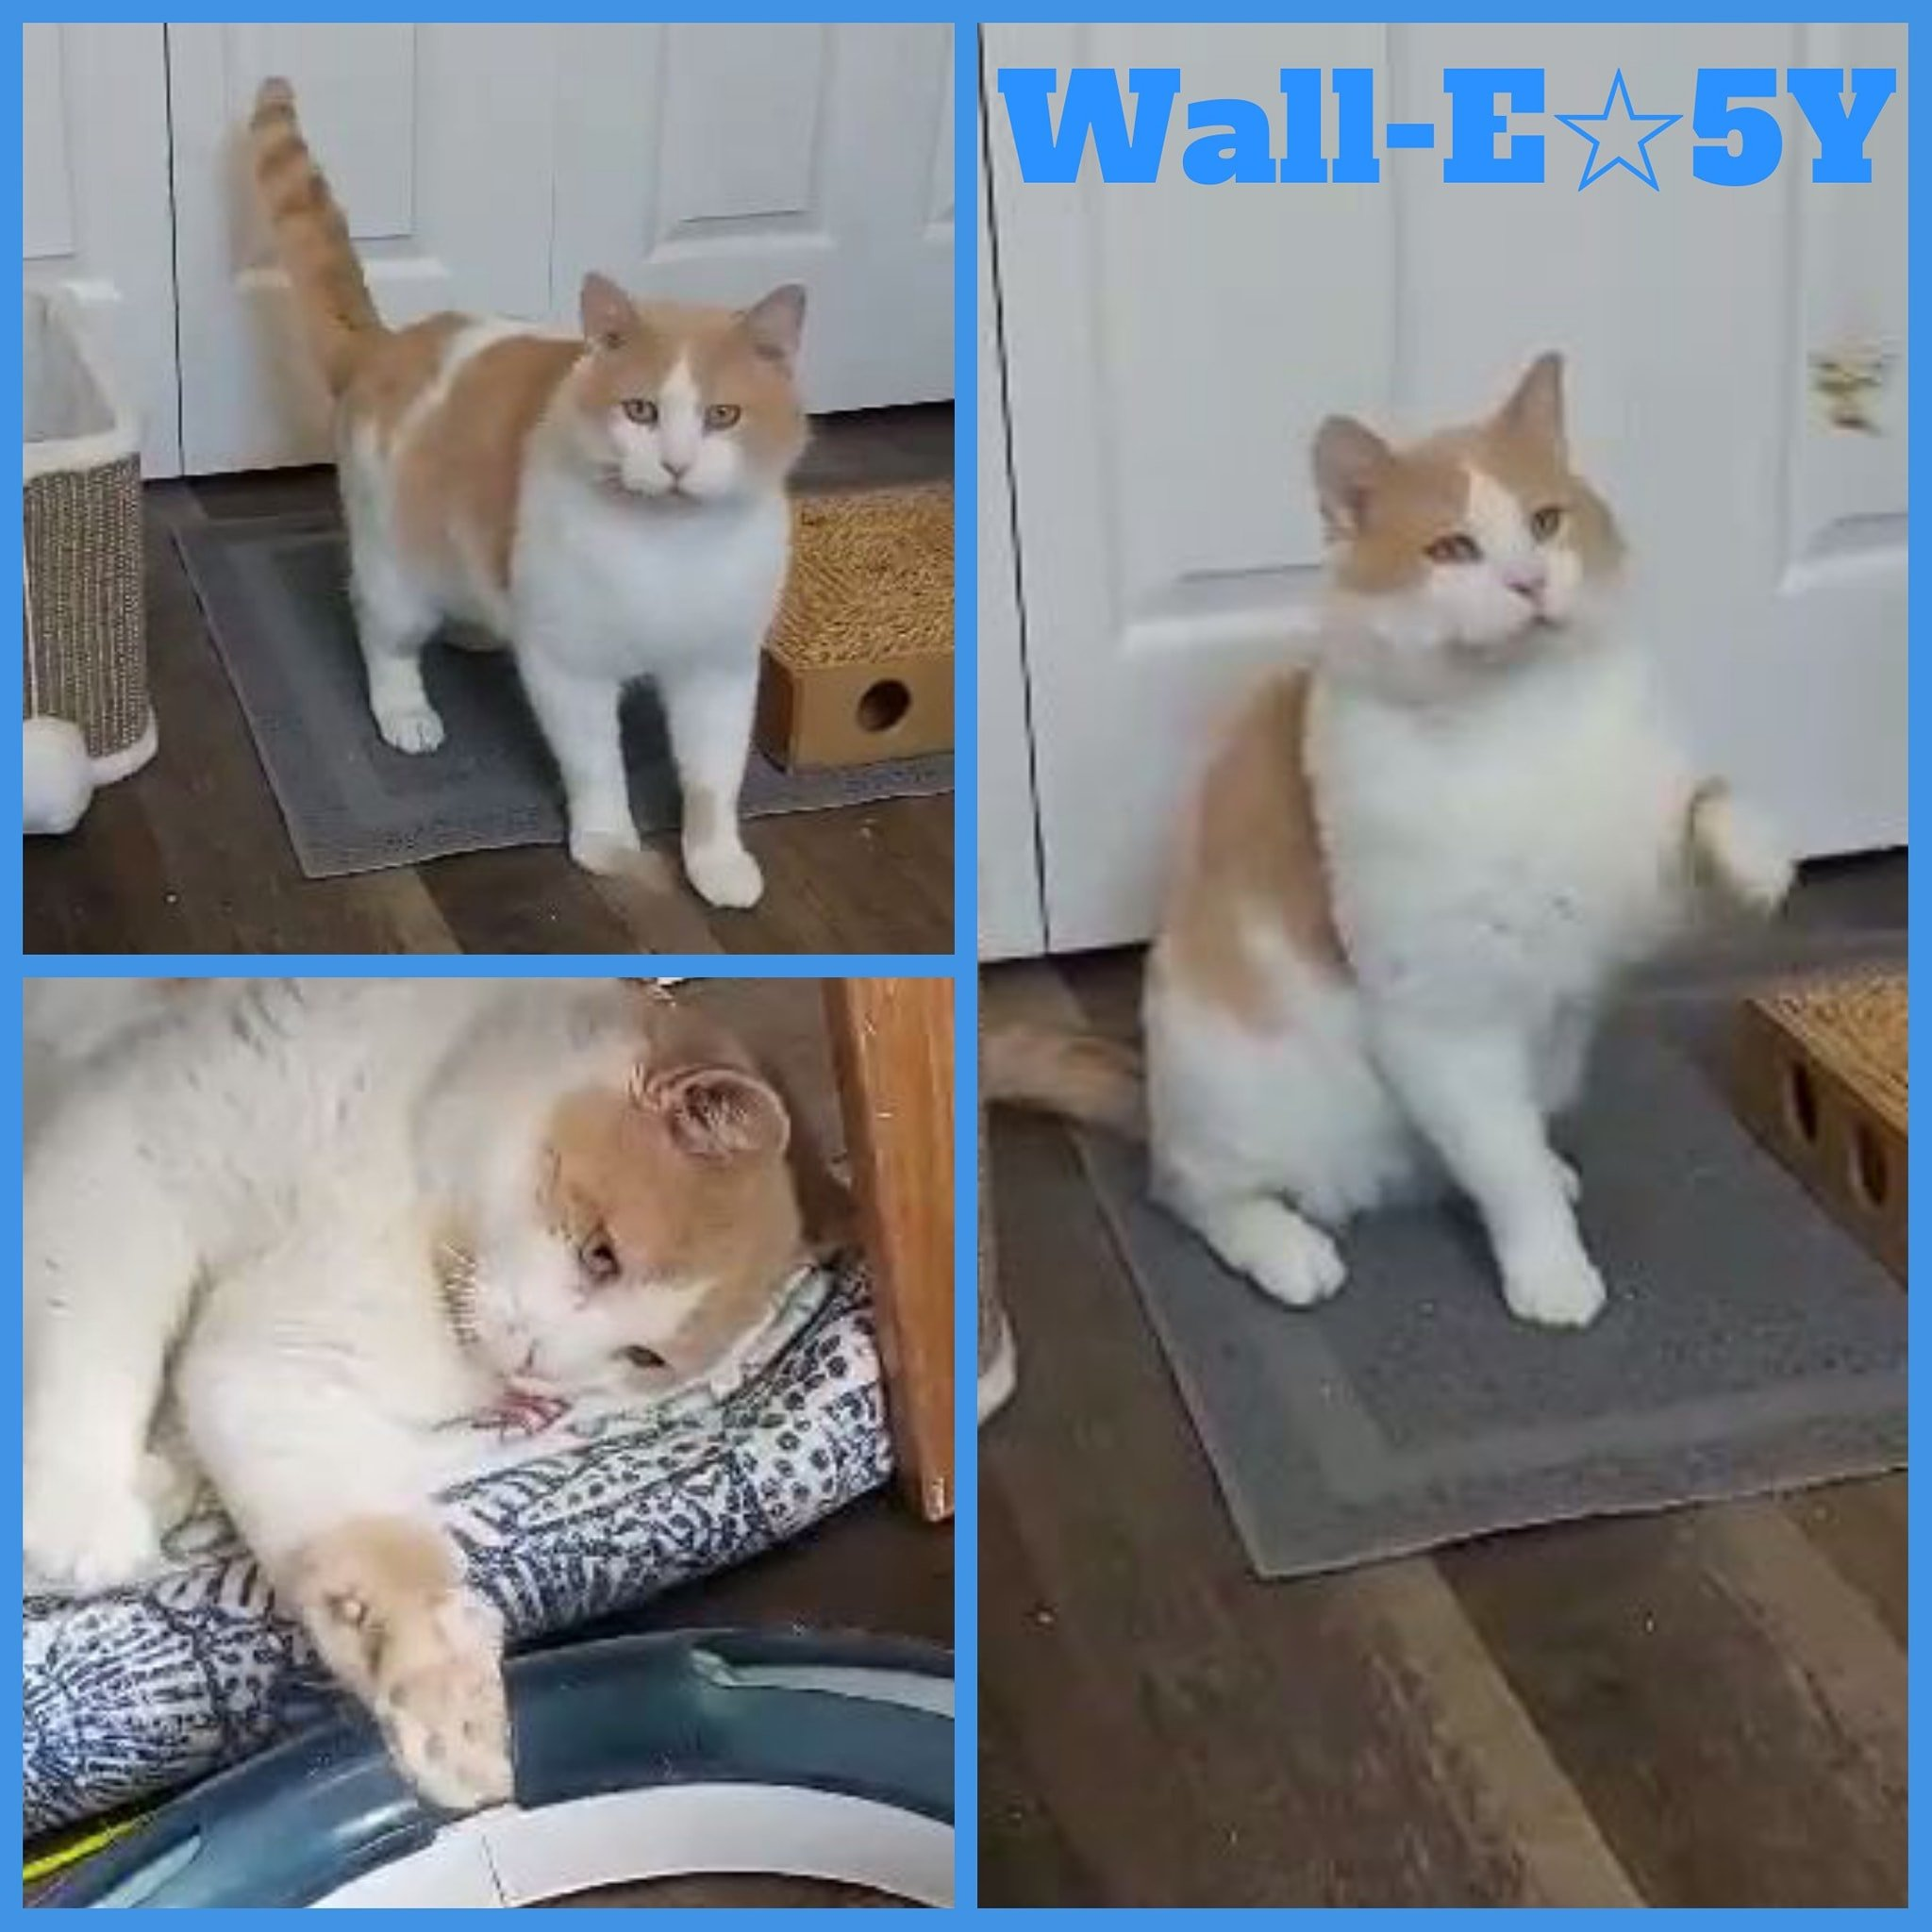 Wall-E/Male/ 5 Years old–ADOPTION PENDING